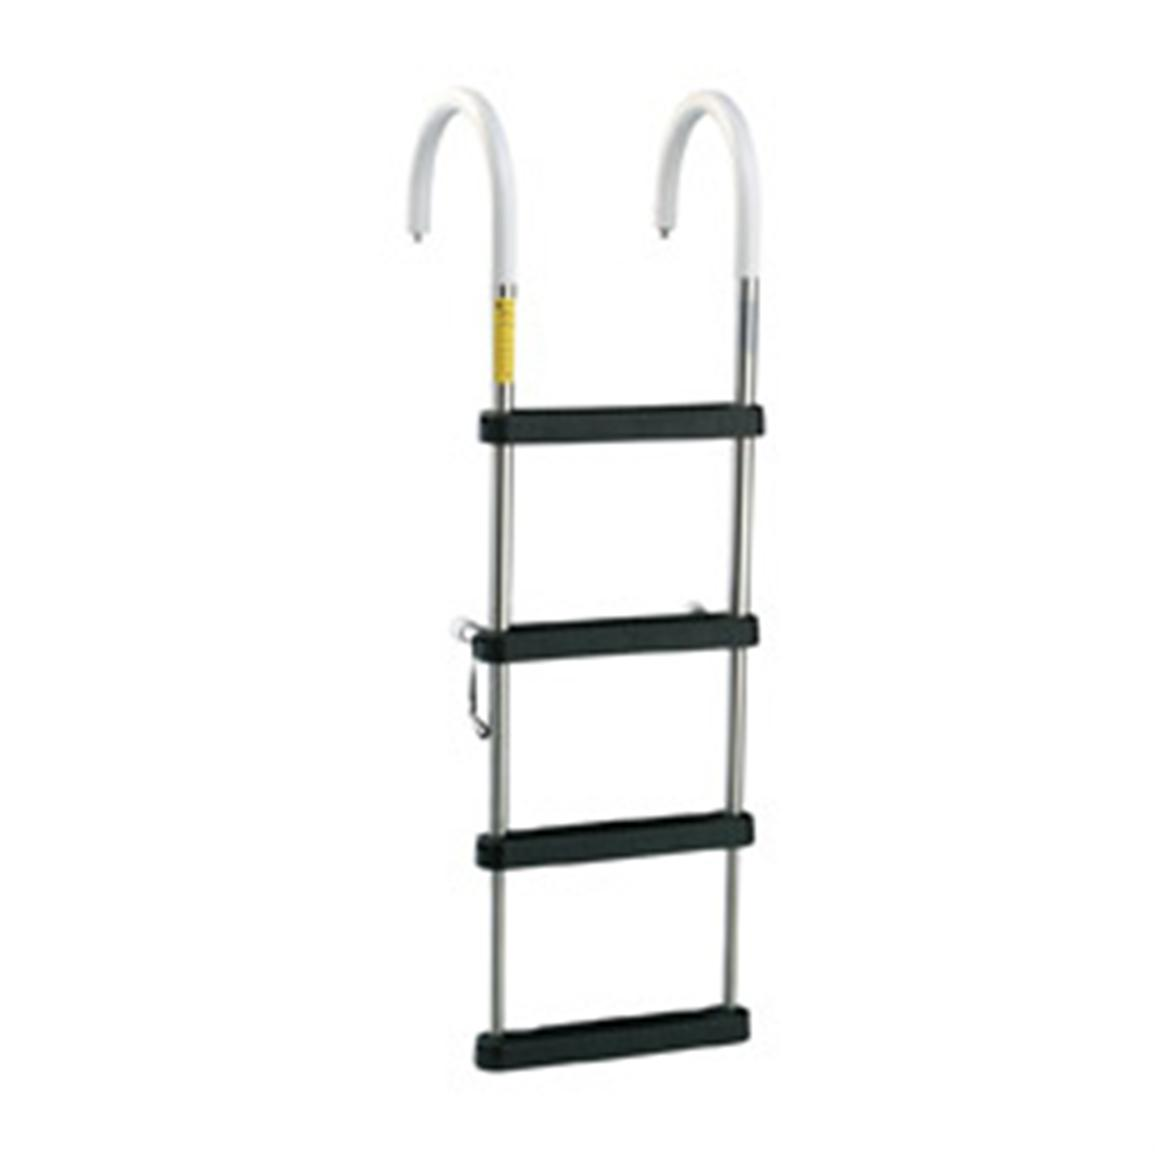 Garelick Telescoping Stainless Steel Pontoon Ladder